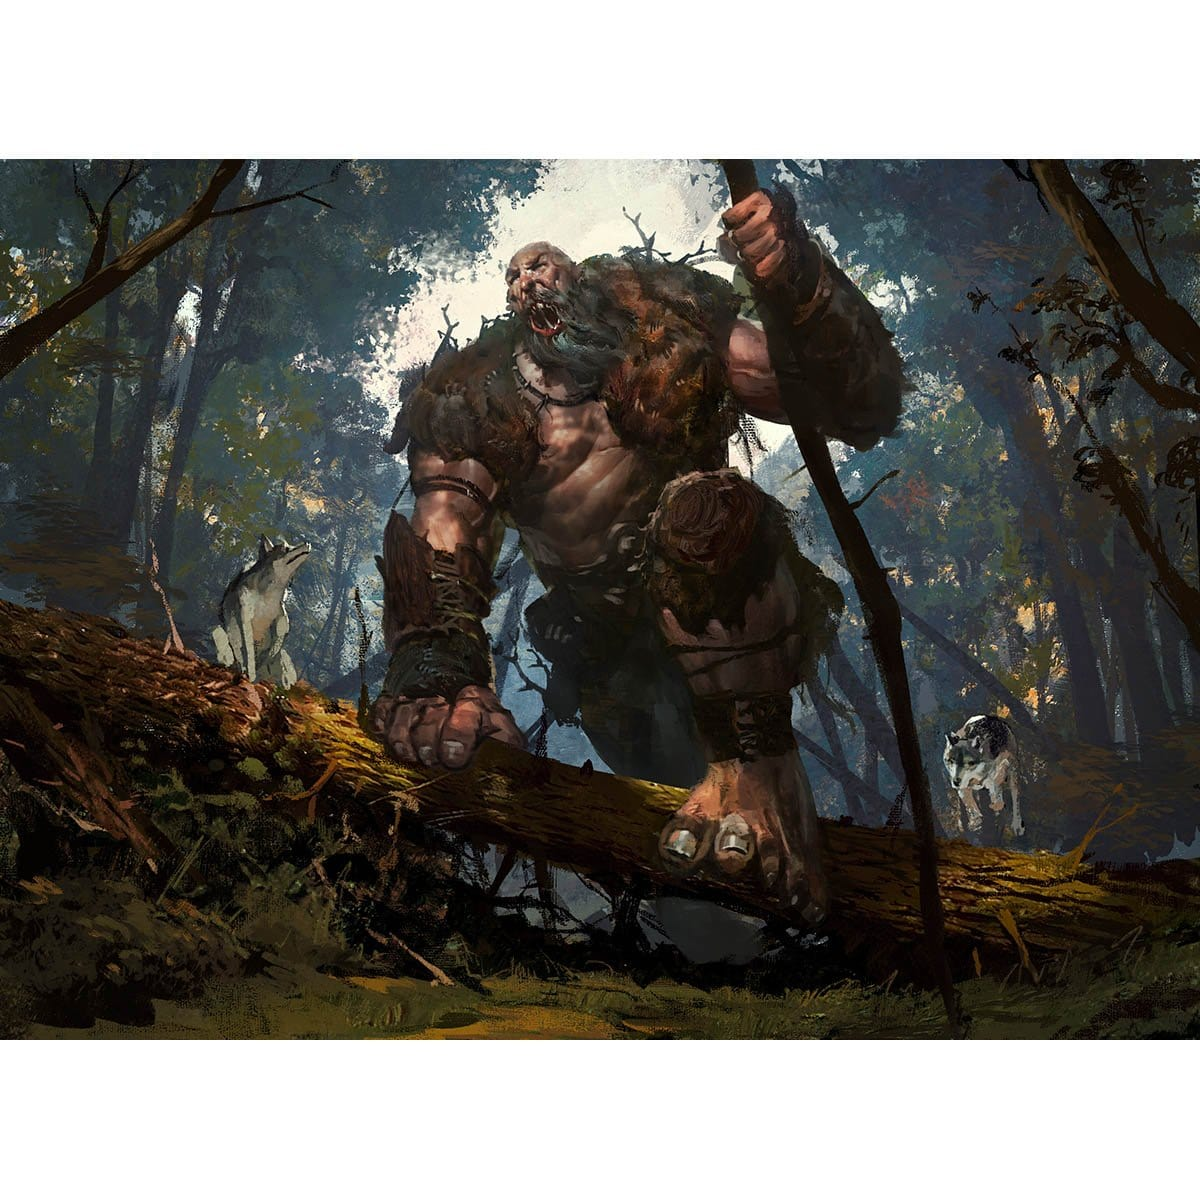 Howling Giant Print - Print - Original Magic Art - Accessories for Magic the Gathering and other card games